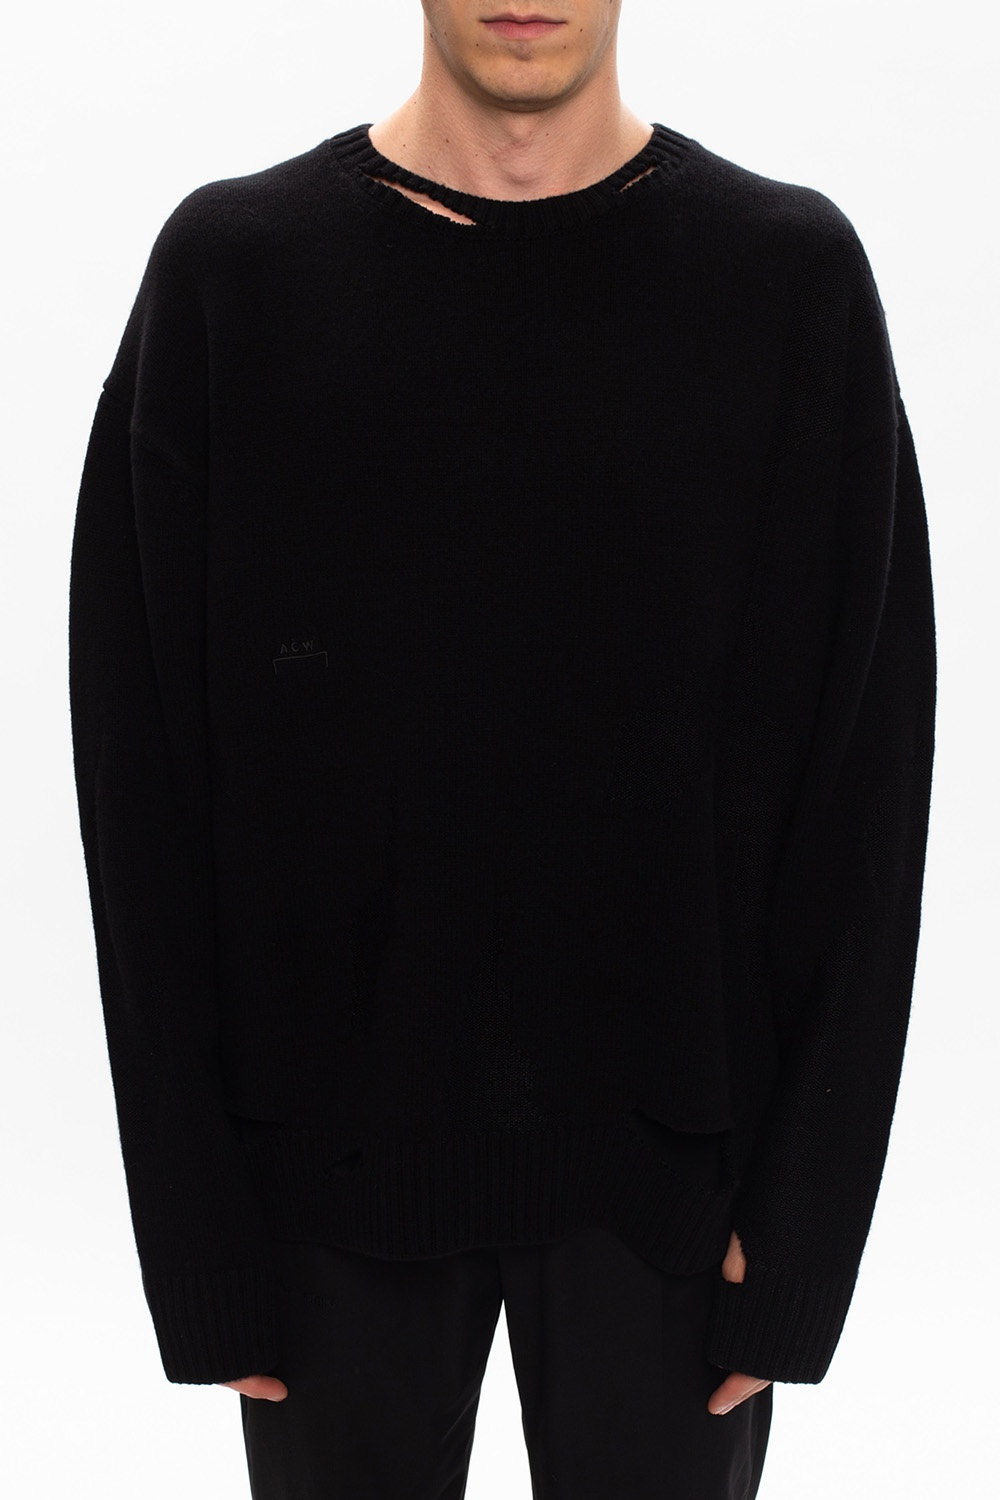 A-COLD-WALL* Sweater with logo